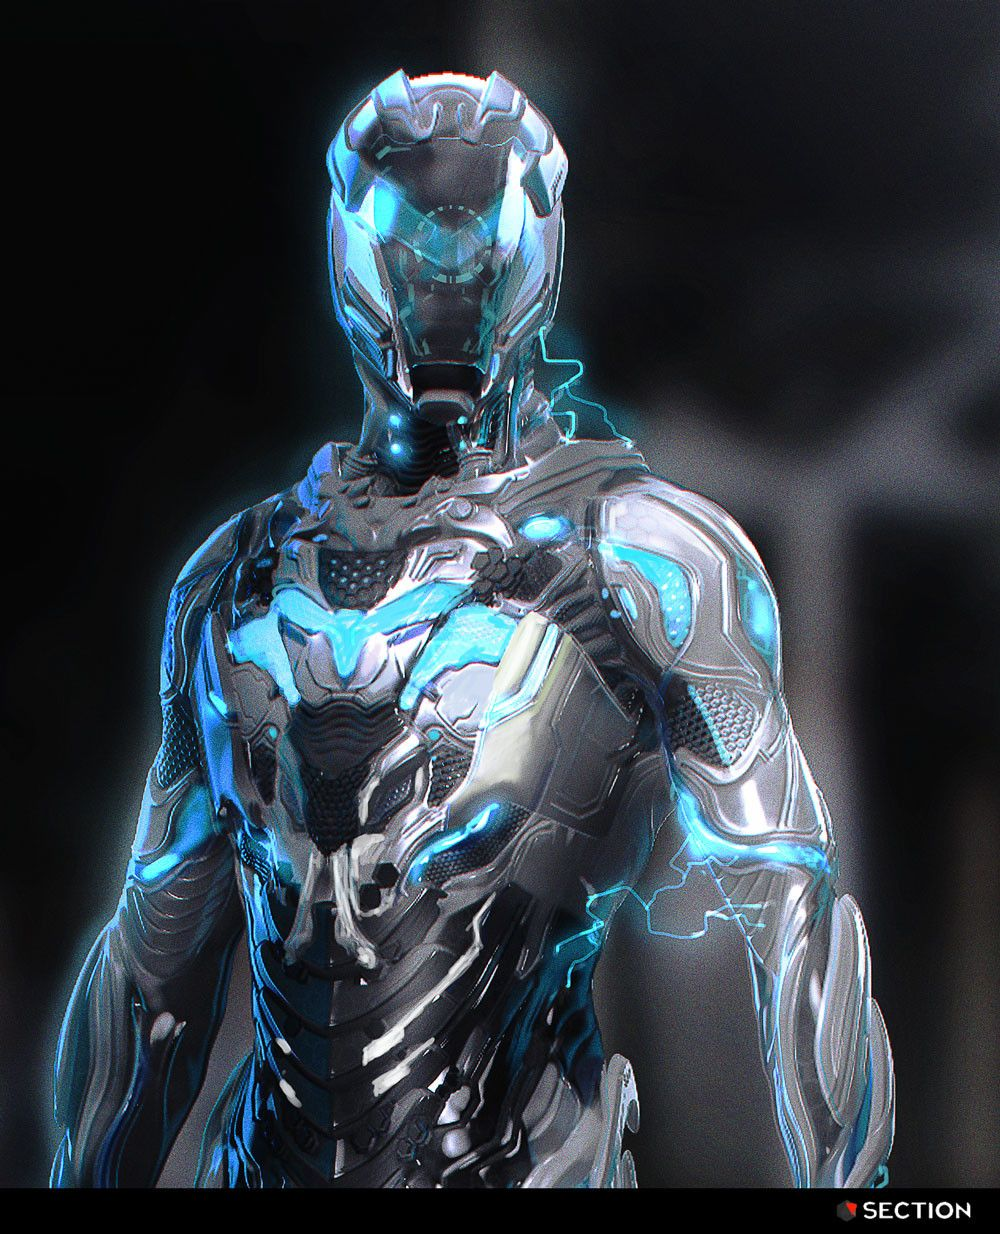 ArtStation - Max Steel Concept art, justin fields | tech ...